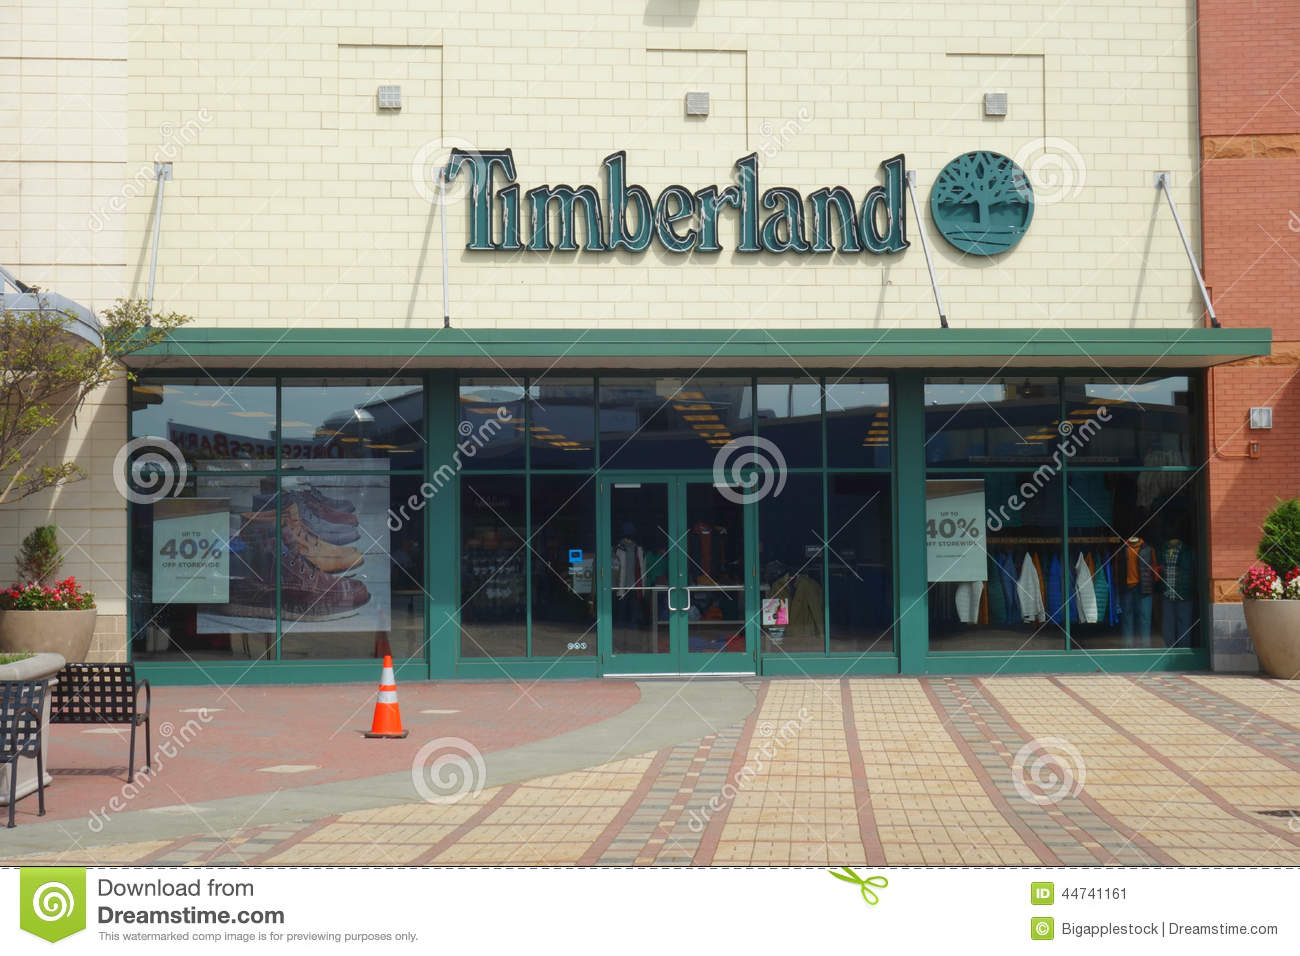 timberland outlet nj